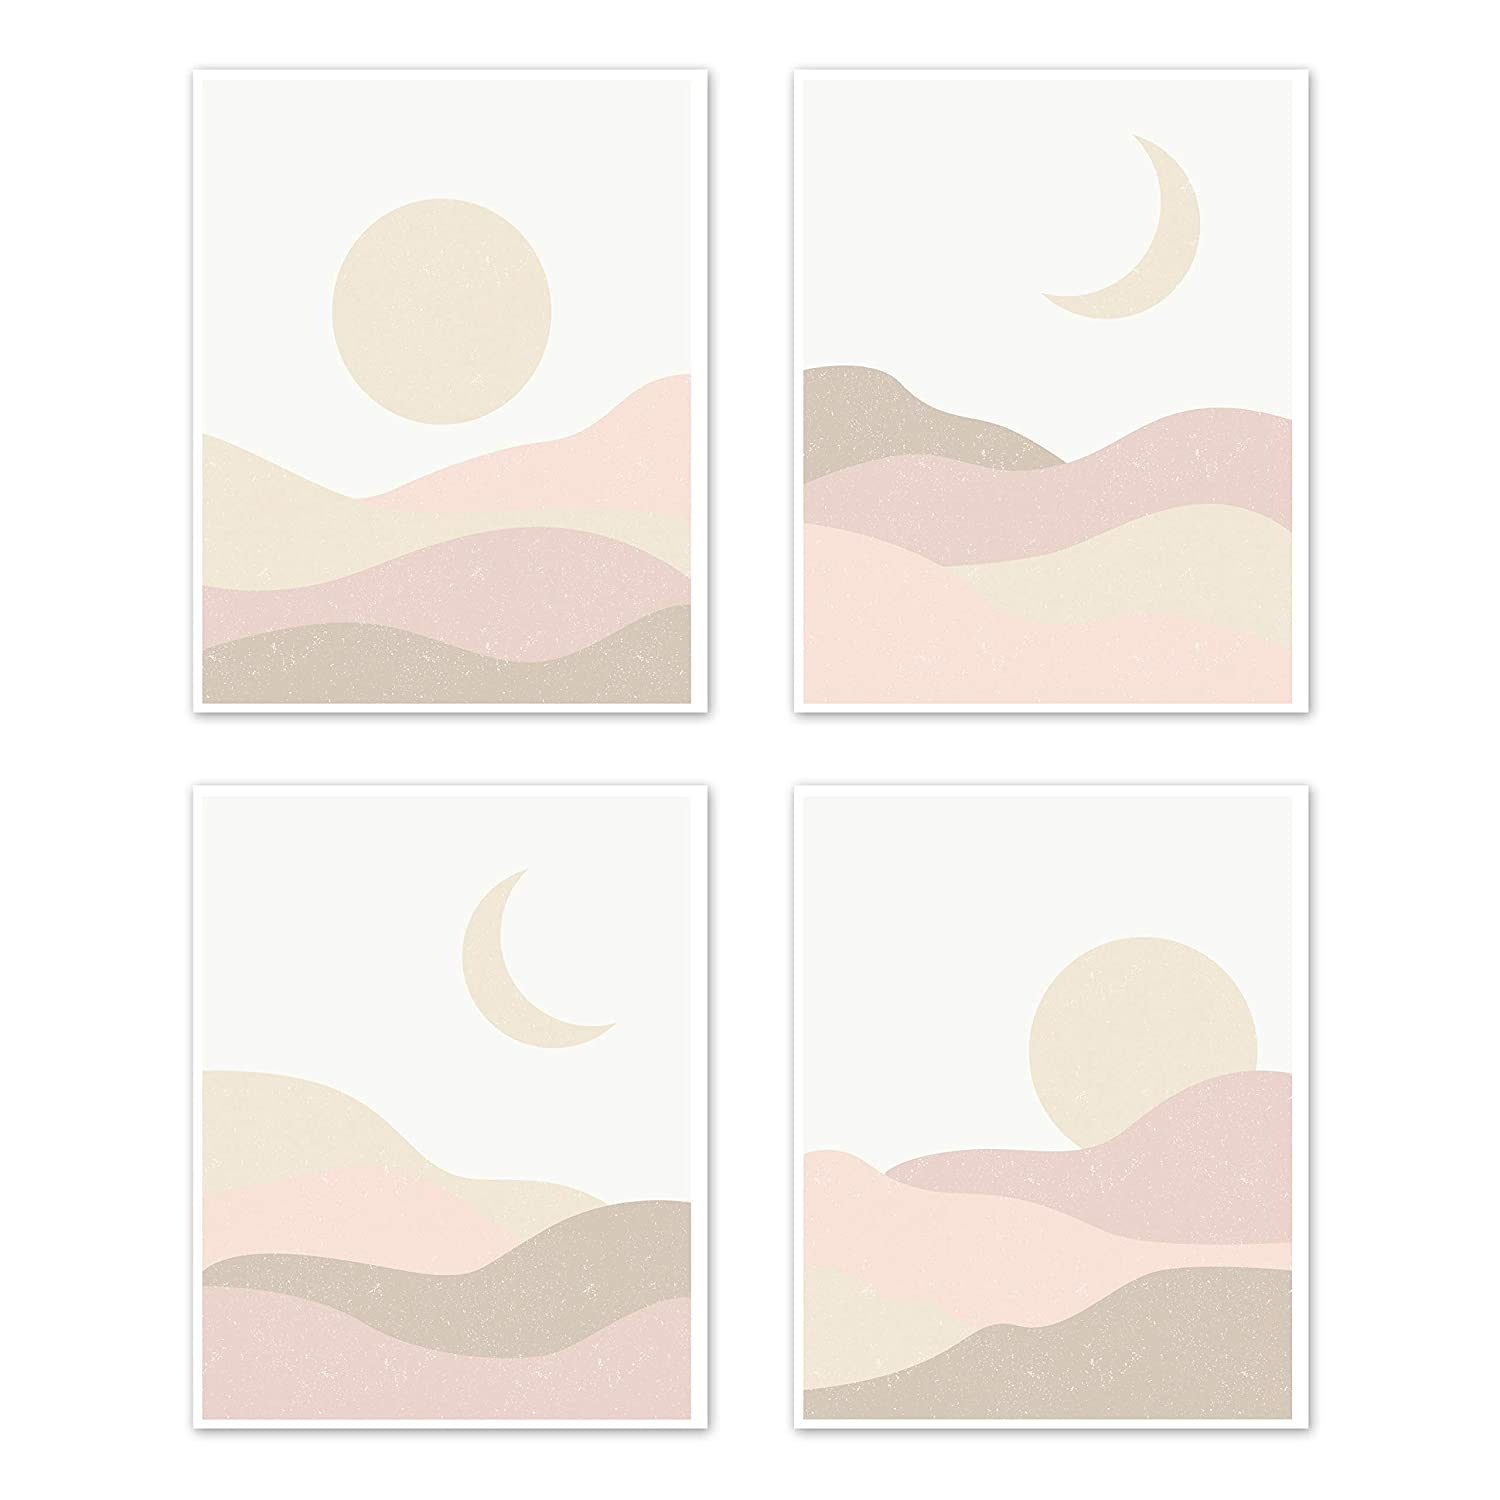 Sweet Jojo Designs Boho Desert Sun Wall Art Prints Room Decor for Baby Nursery Kids - Set of 4 Pink Mauve Gold Ivory Taupe Bohemian Abstract Particle Mountain Southwest Nature Outdoors Moon Sandscape